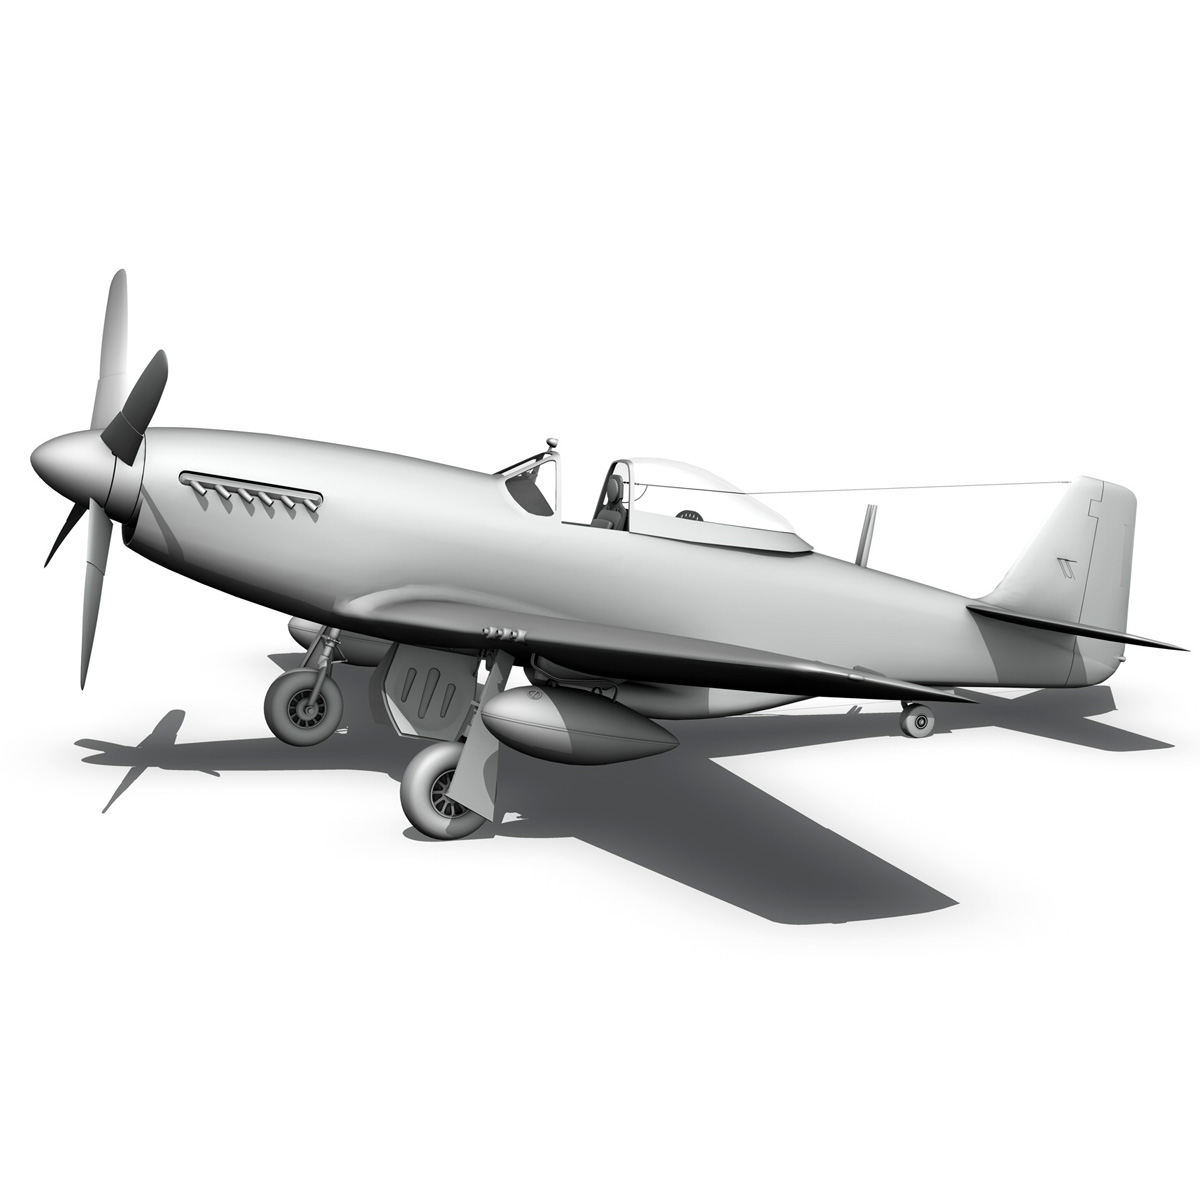 north american p-51d – flying dutchman 3d model fbx lwo lw lws obj c4d 267134